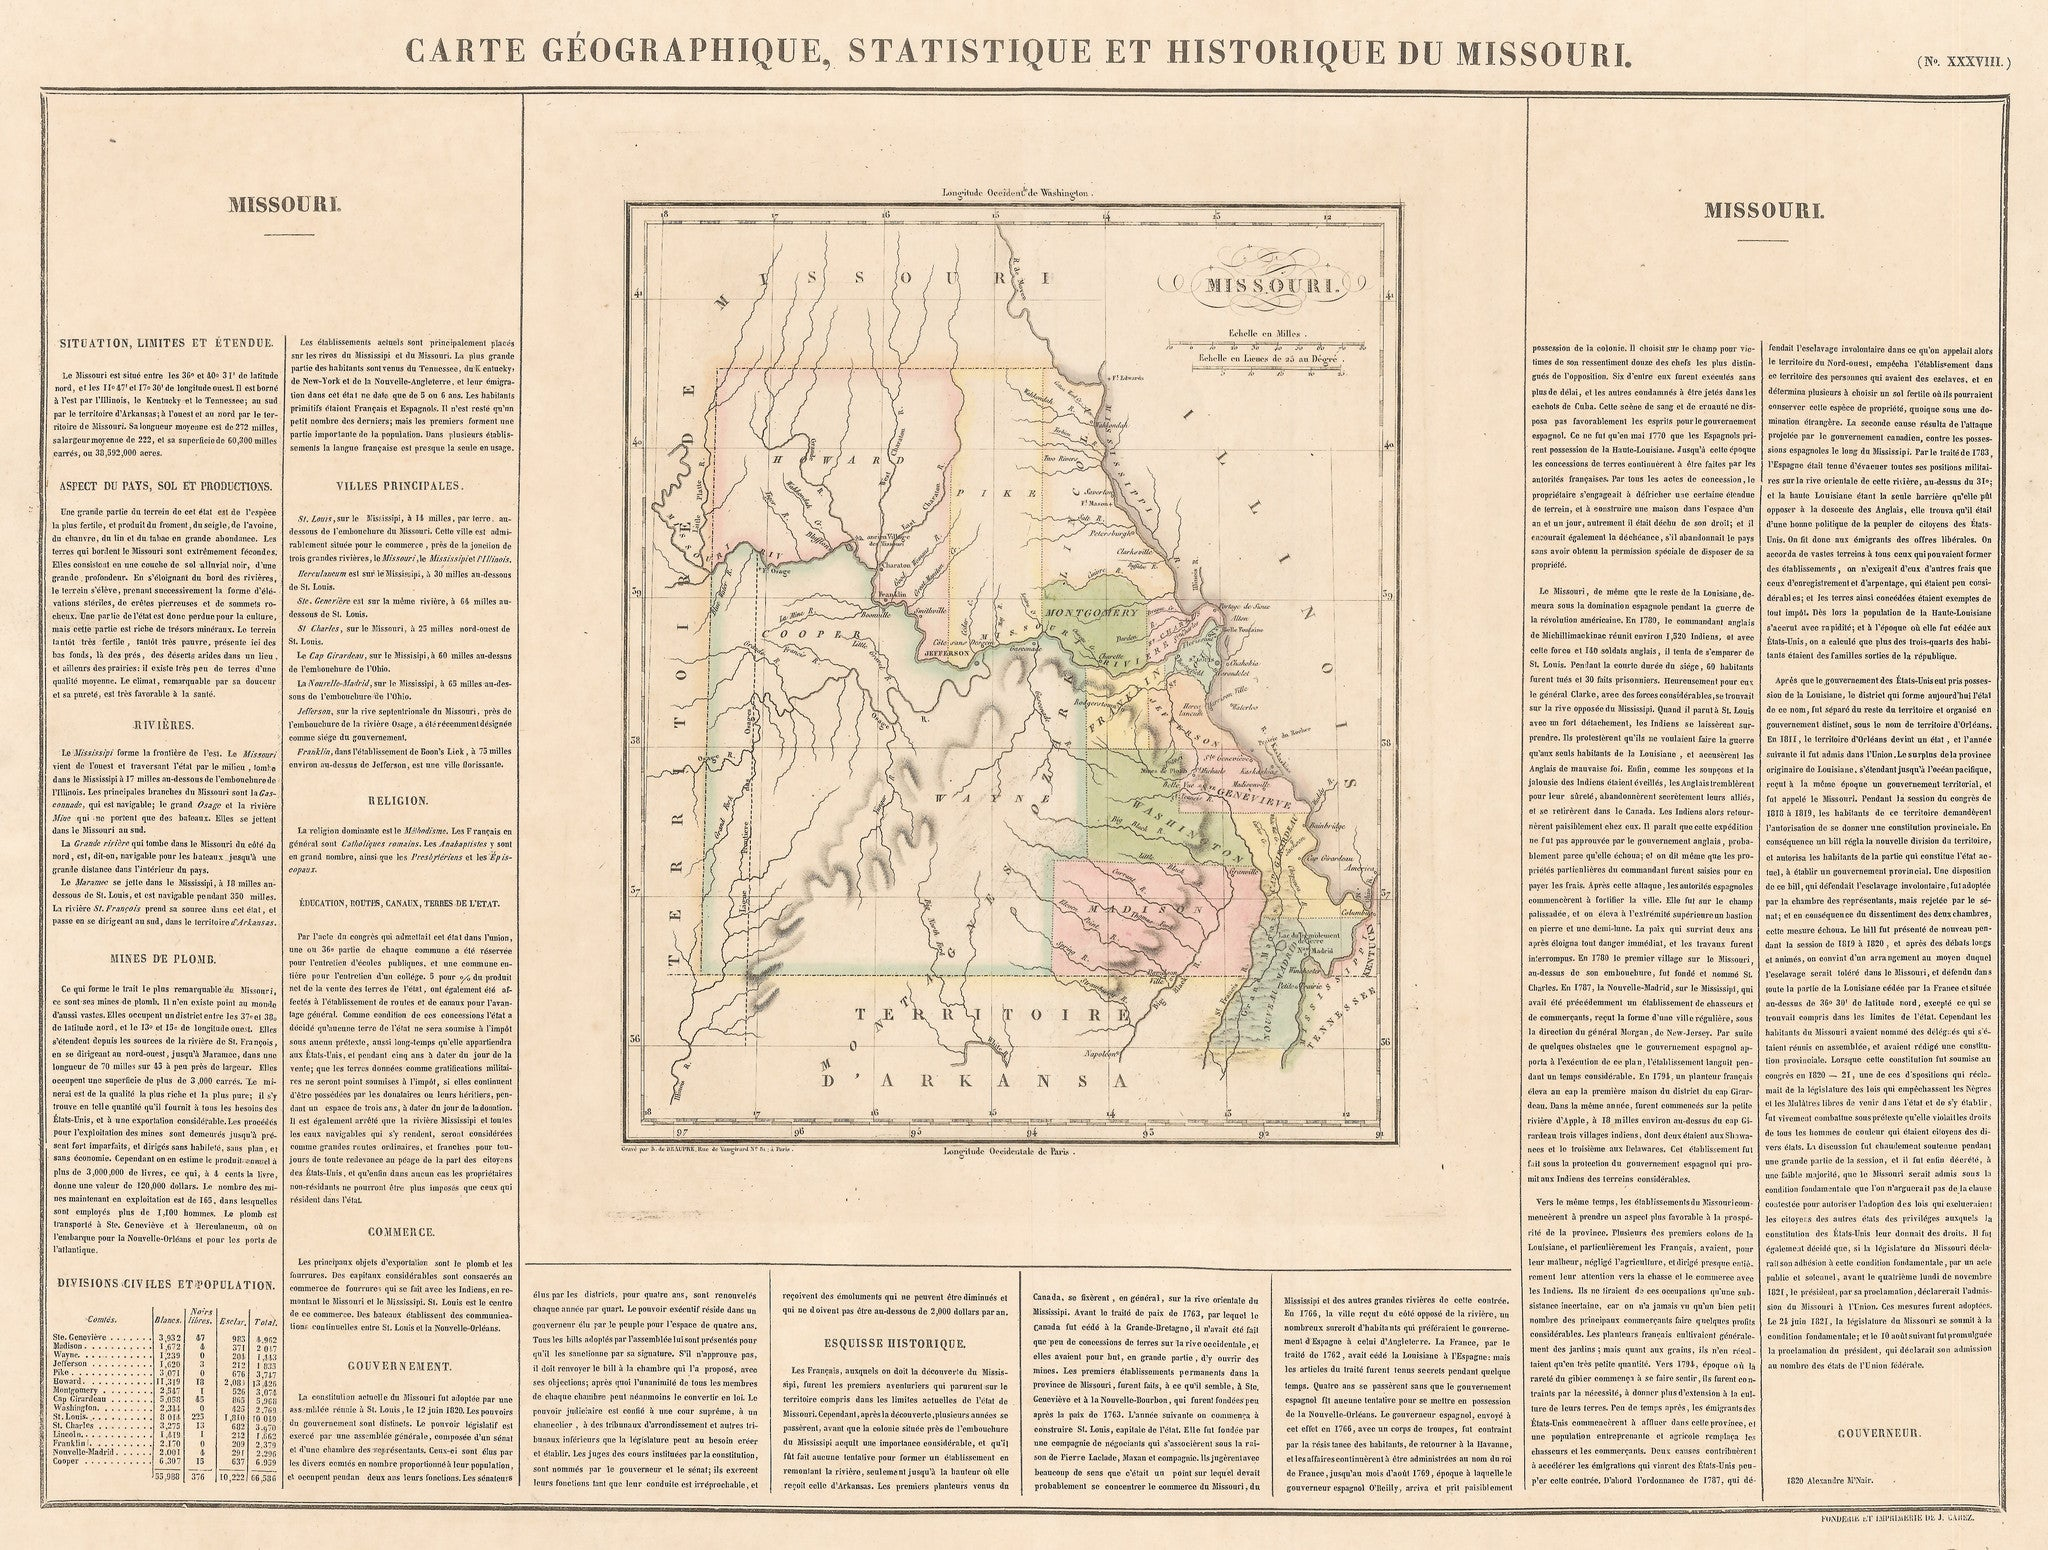 Authentic Antique Map of Missouri: Carte Geographique, Statistique et Historique de Missouri  By: Jean Alexandre Buchon  Date: 1825 (Published) Paris  Dimensions: 17 x 24 inches (43.18 cm x 60.96 cm)